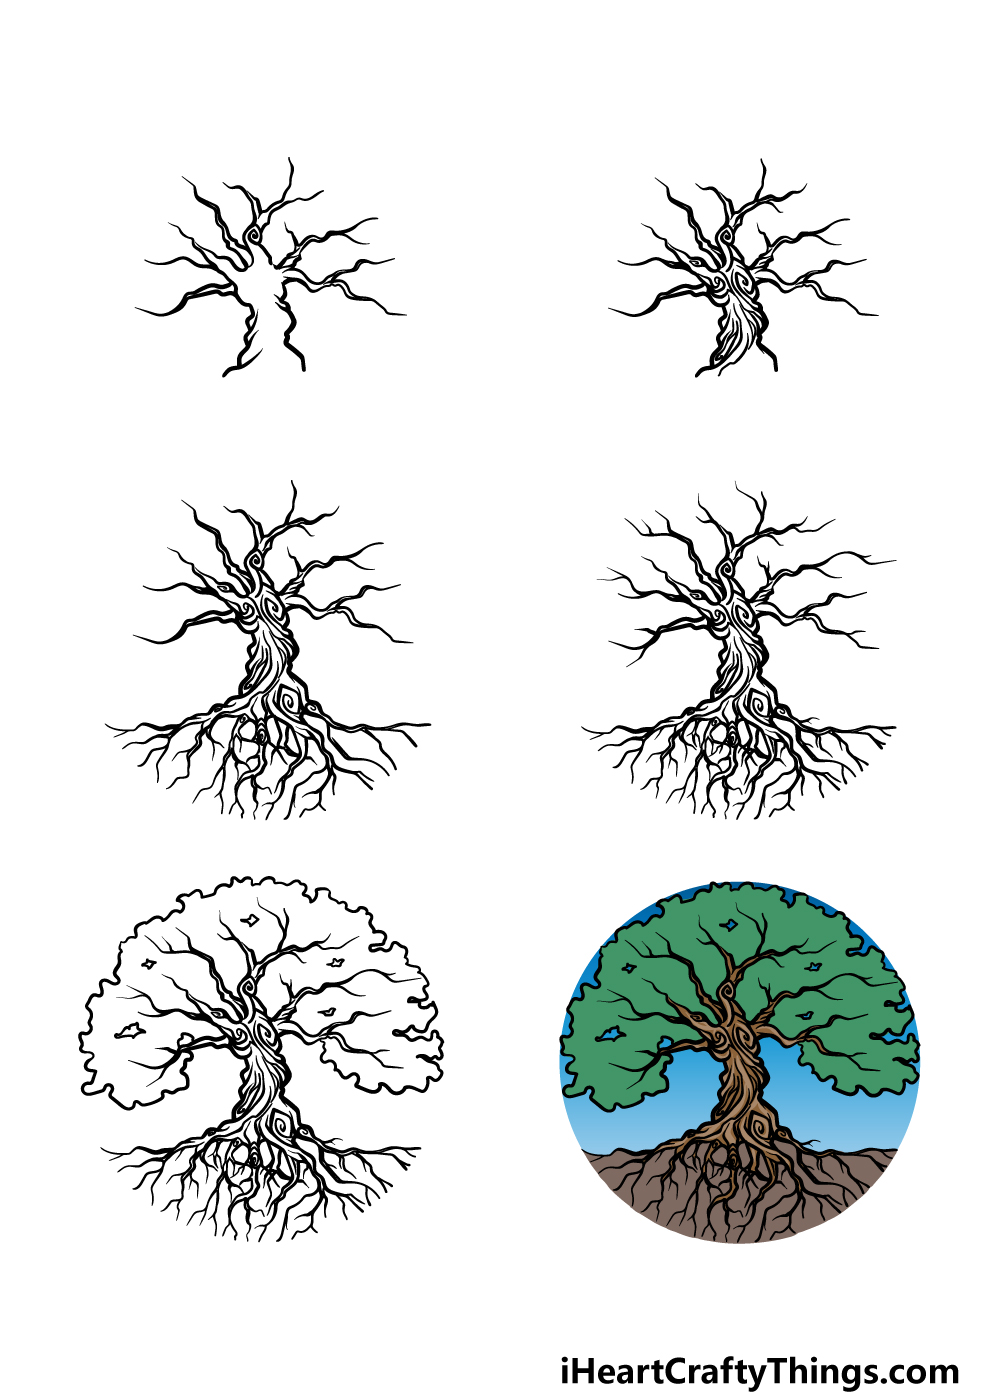 how to draw the tree of life in 6 steps